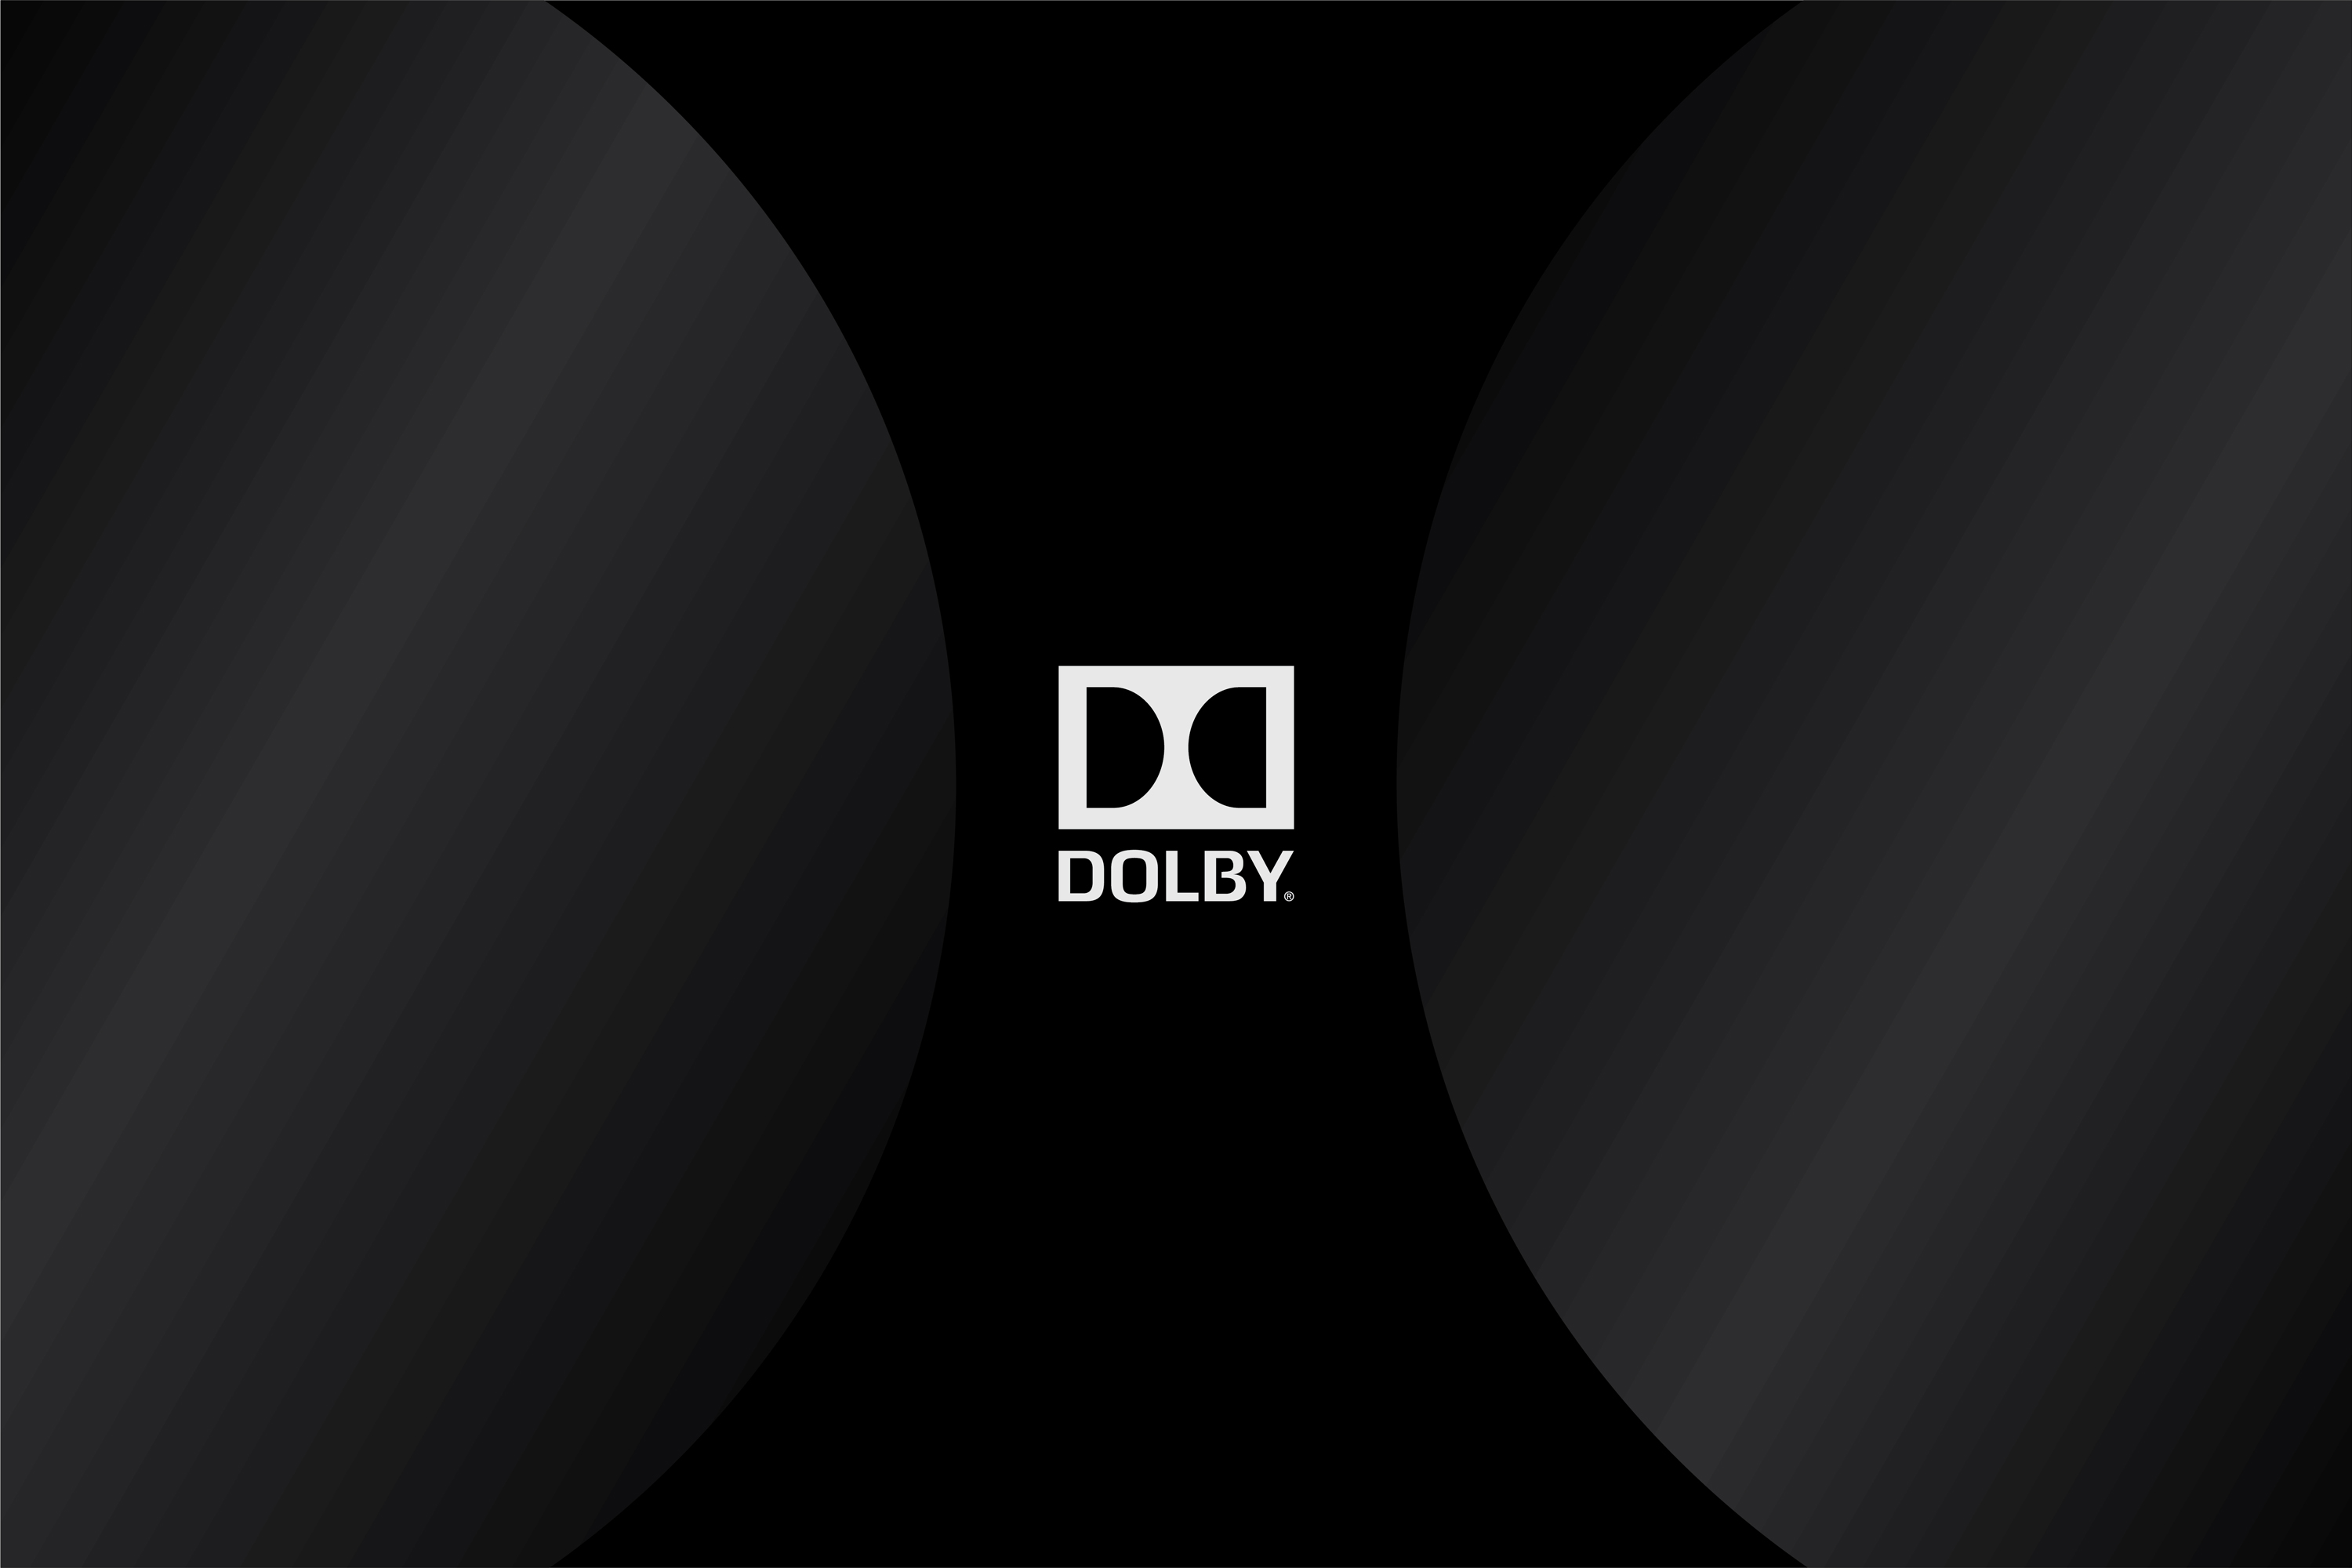 Dolby_Double_D